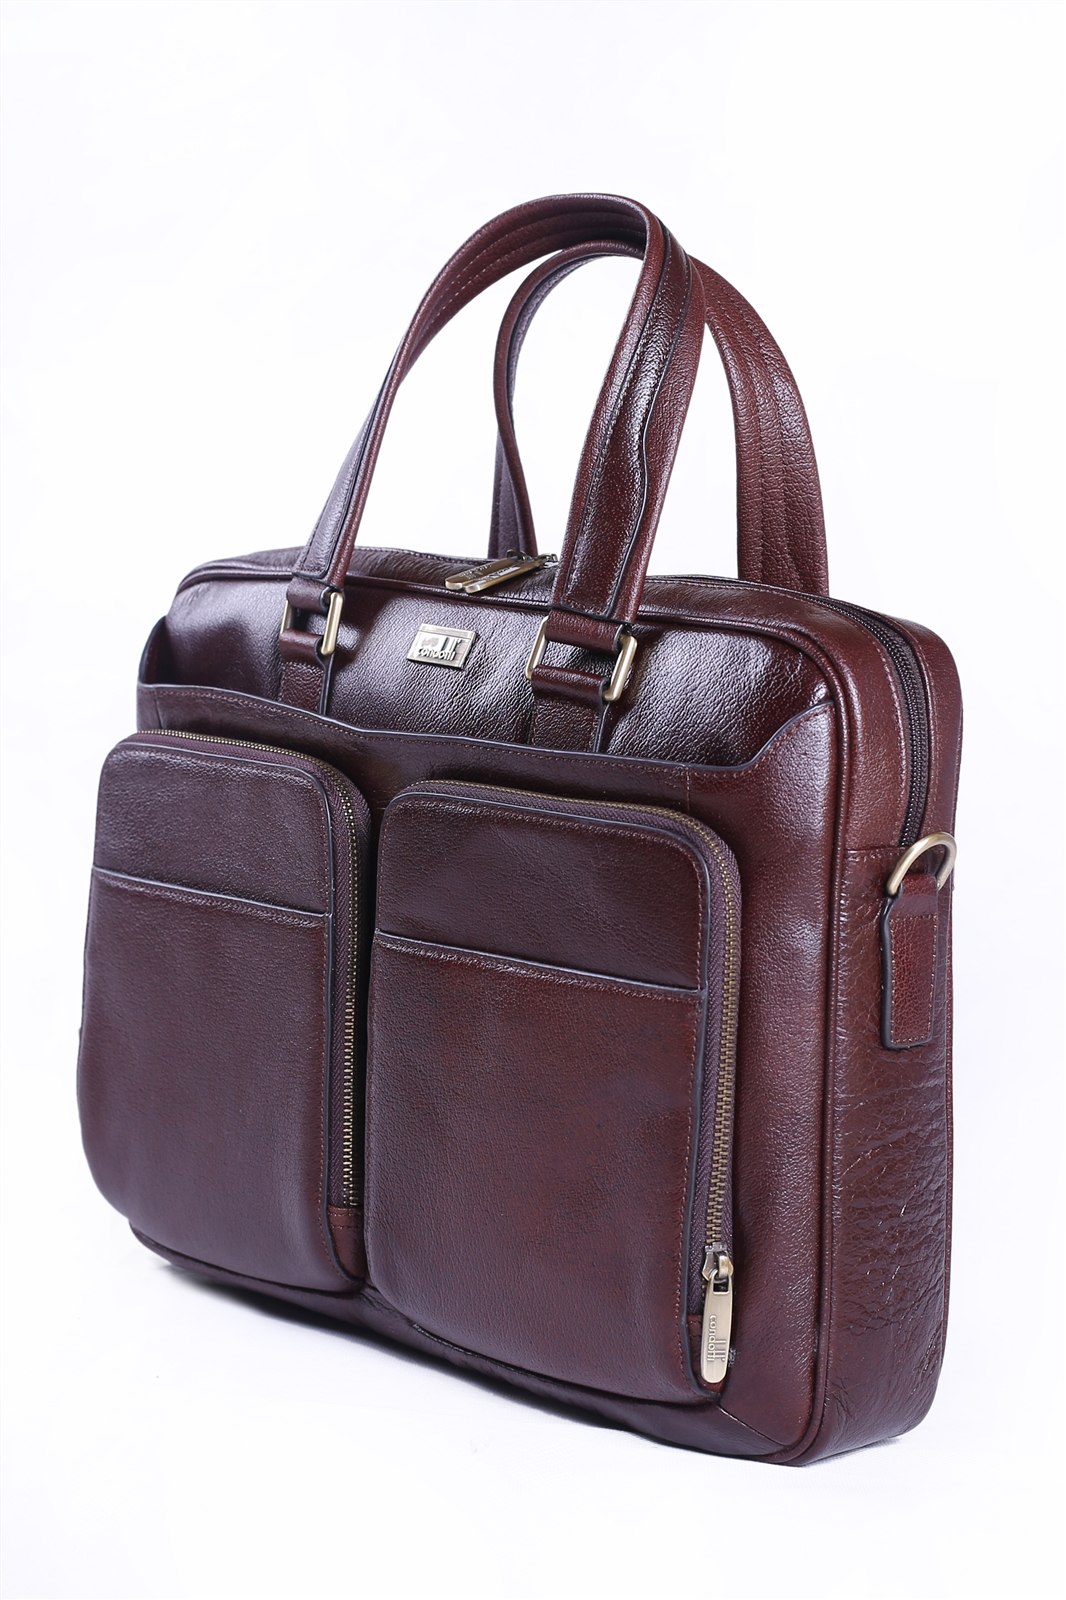 Leather Brief Case - CODE 133-3821